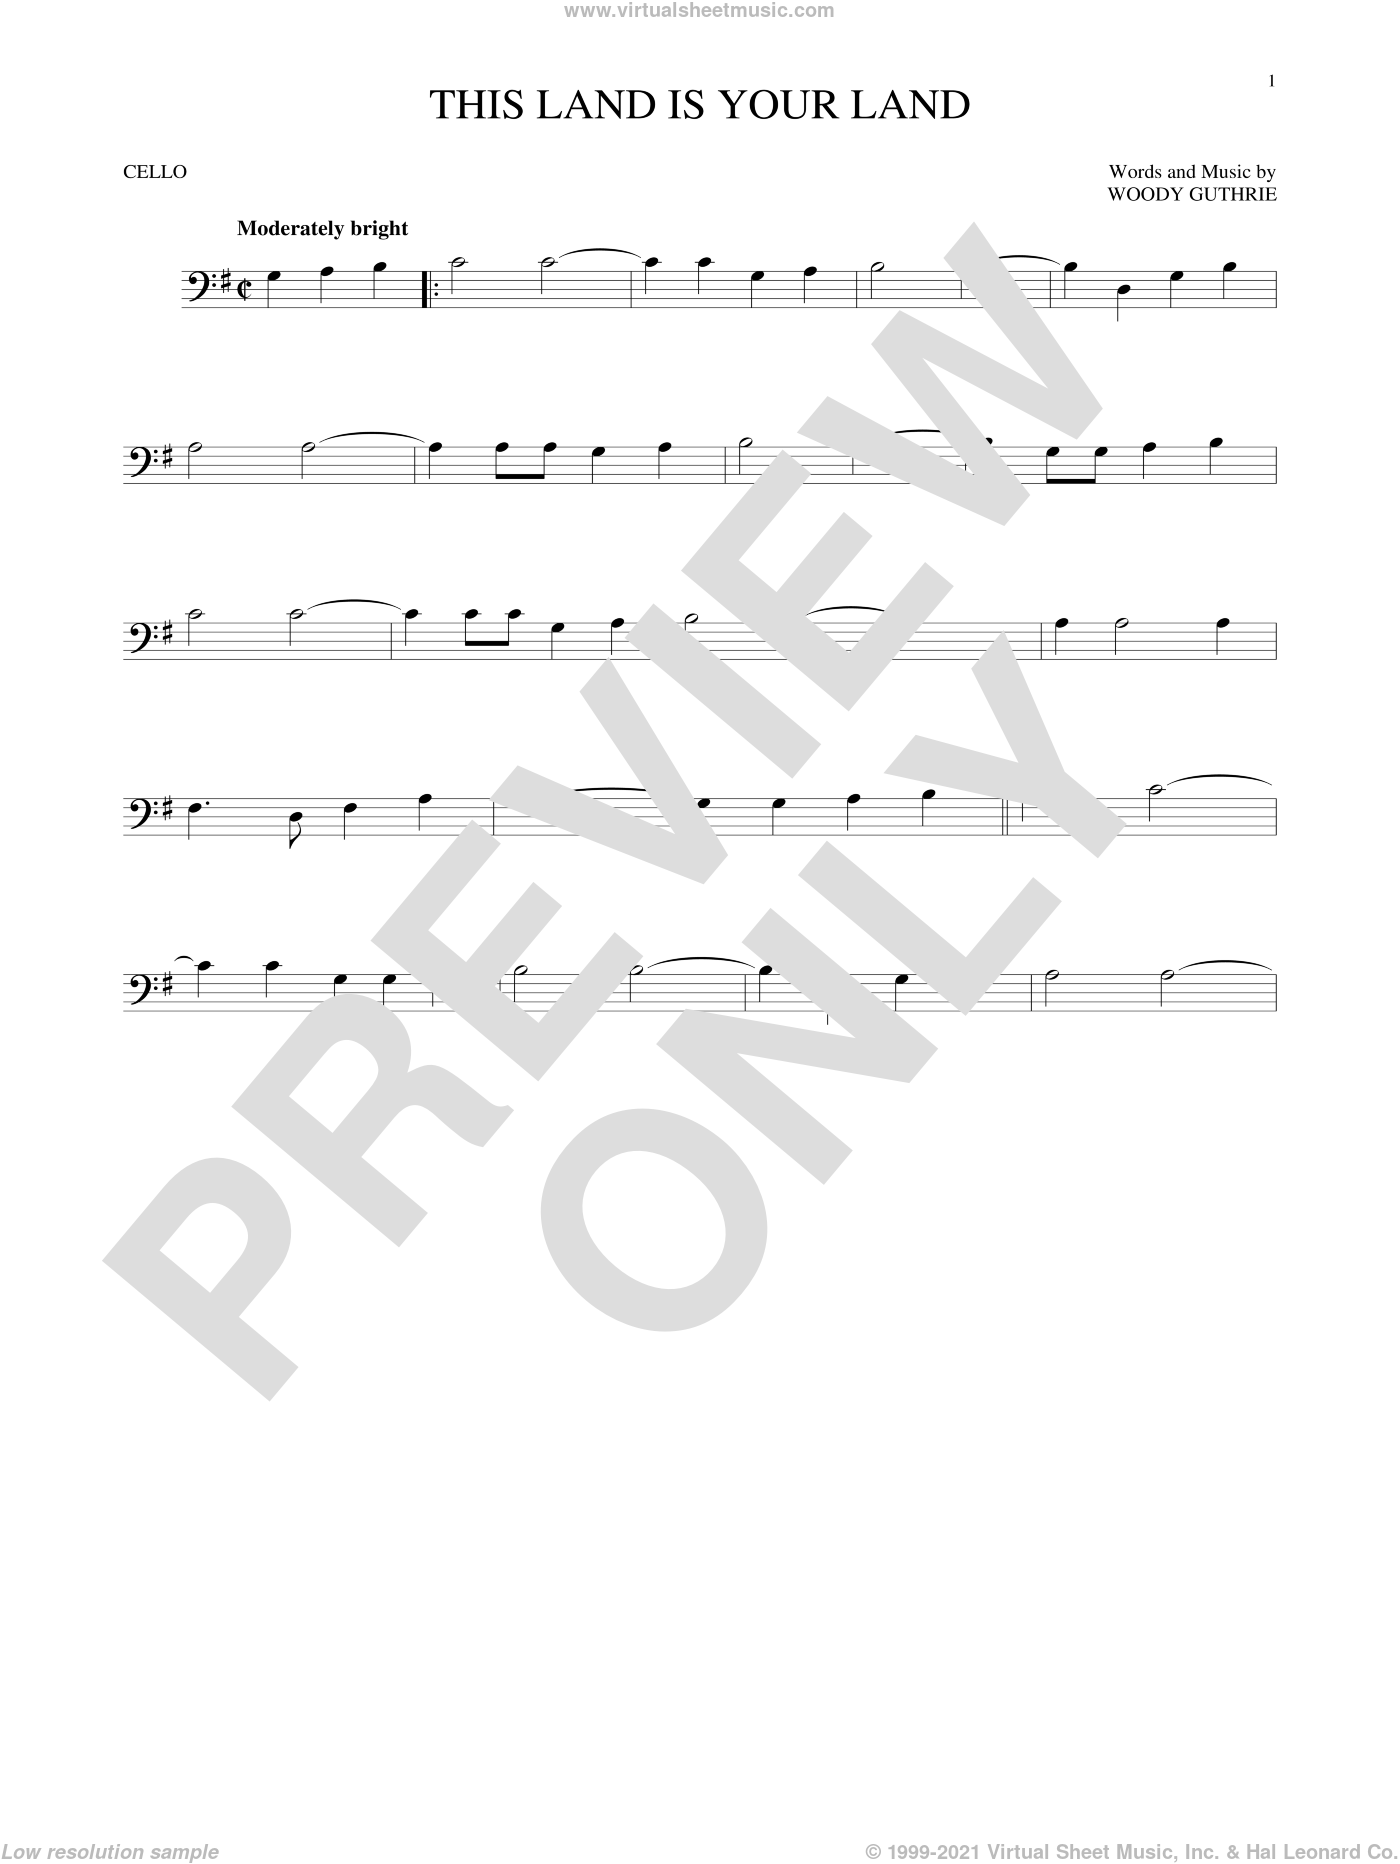 This Land Is Your Land sheet music for cello solo by Woody Guthrie, intermediate skill level